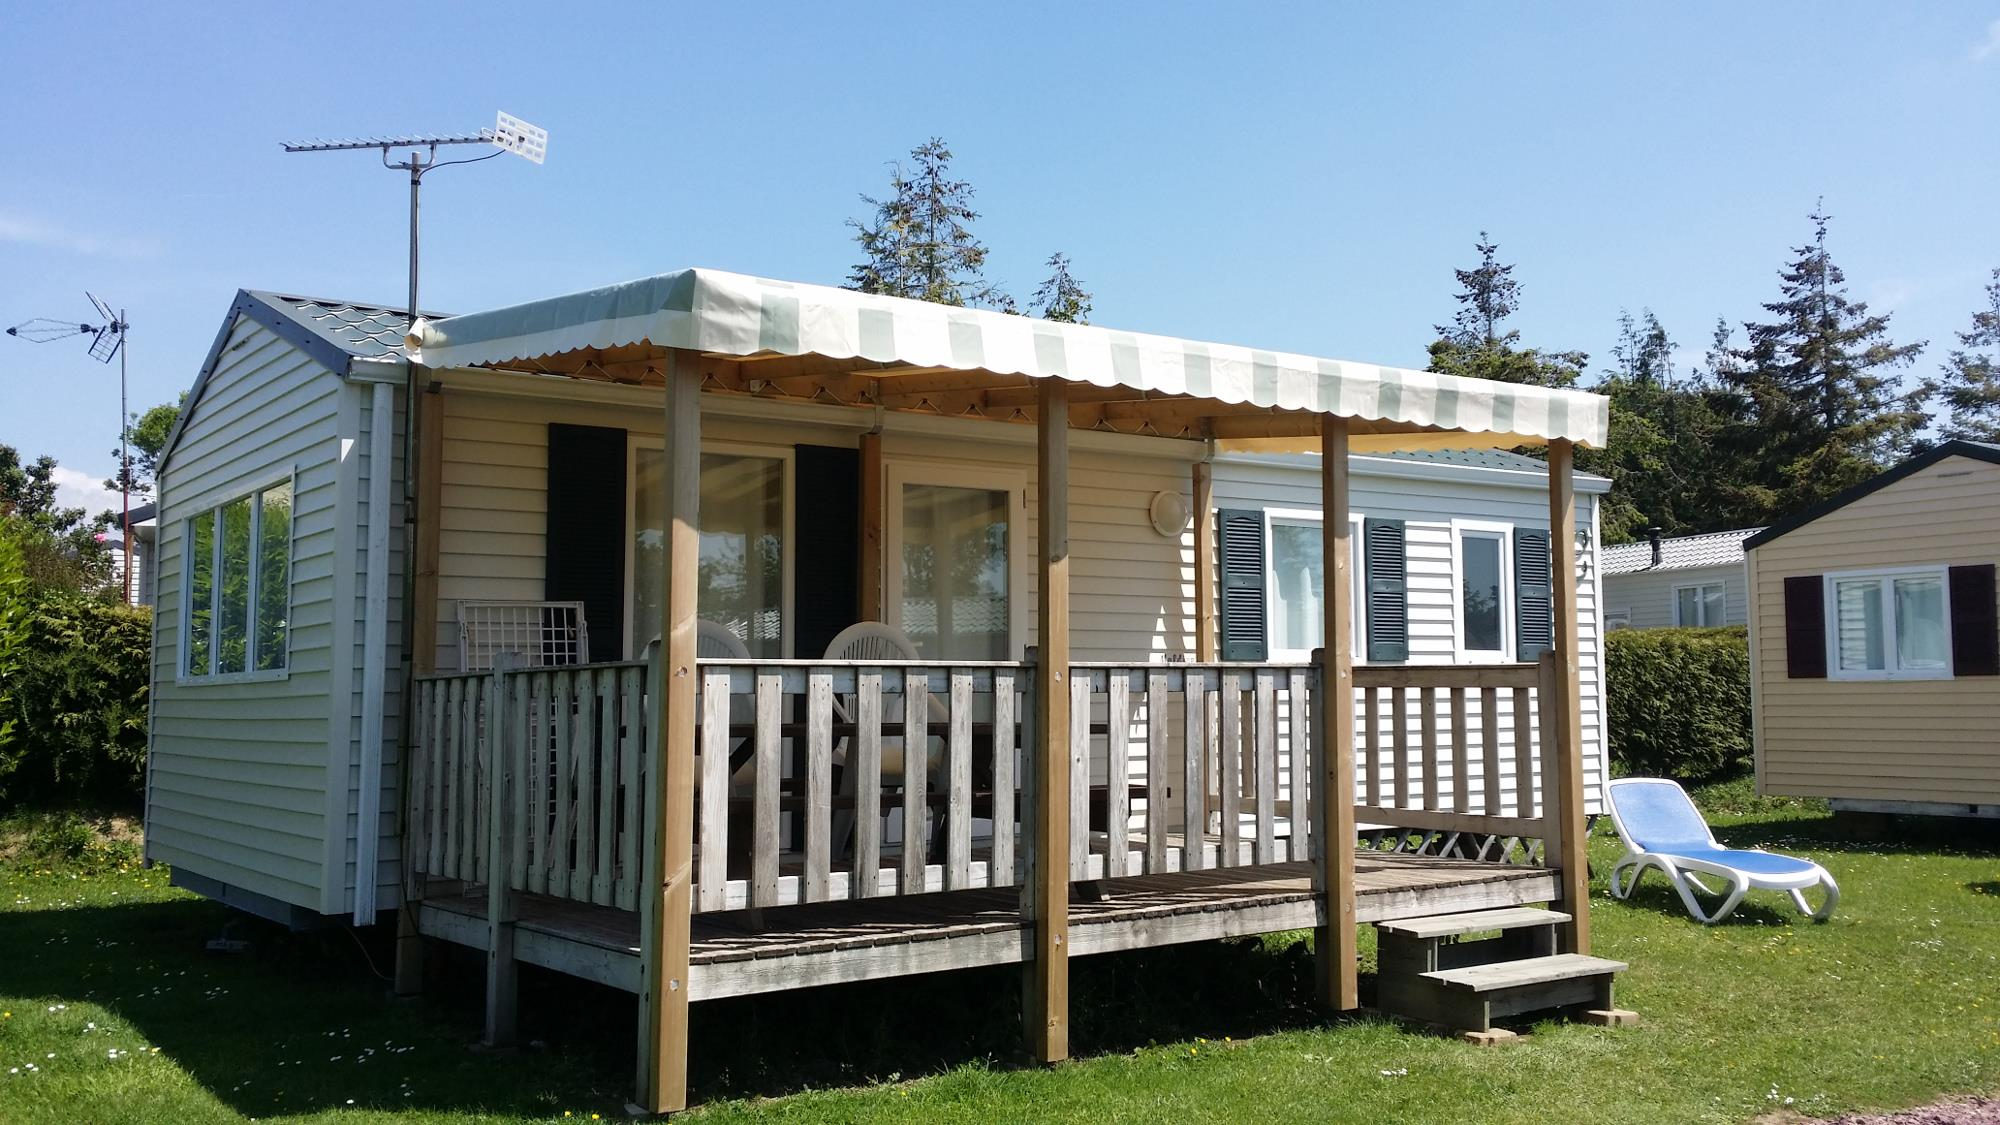 MOBIL-HOME 30m² - 2 chambres -